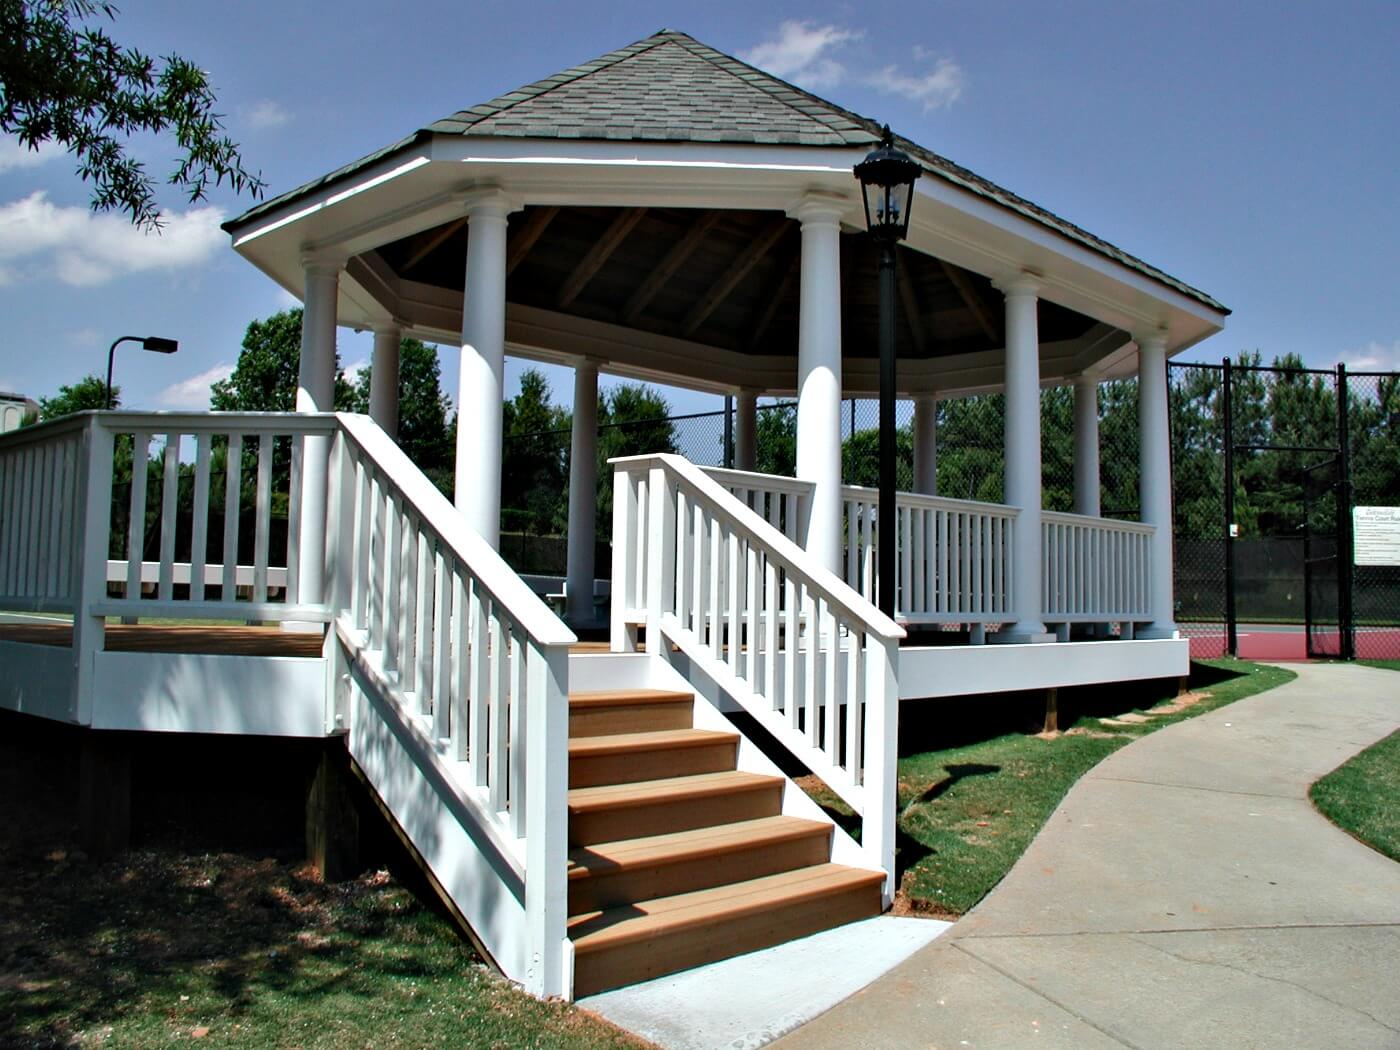 Custom gazebo on deck